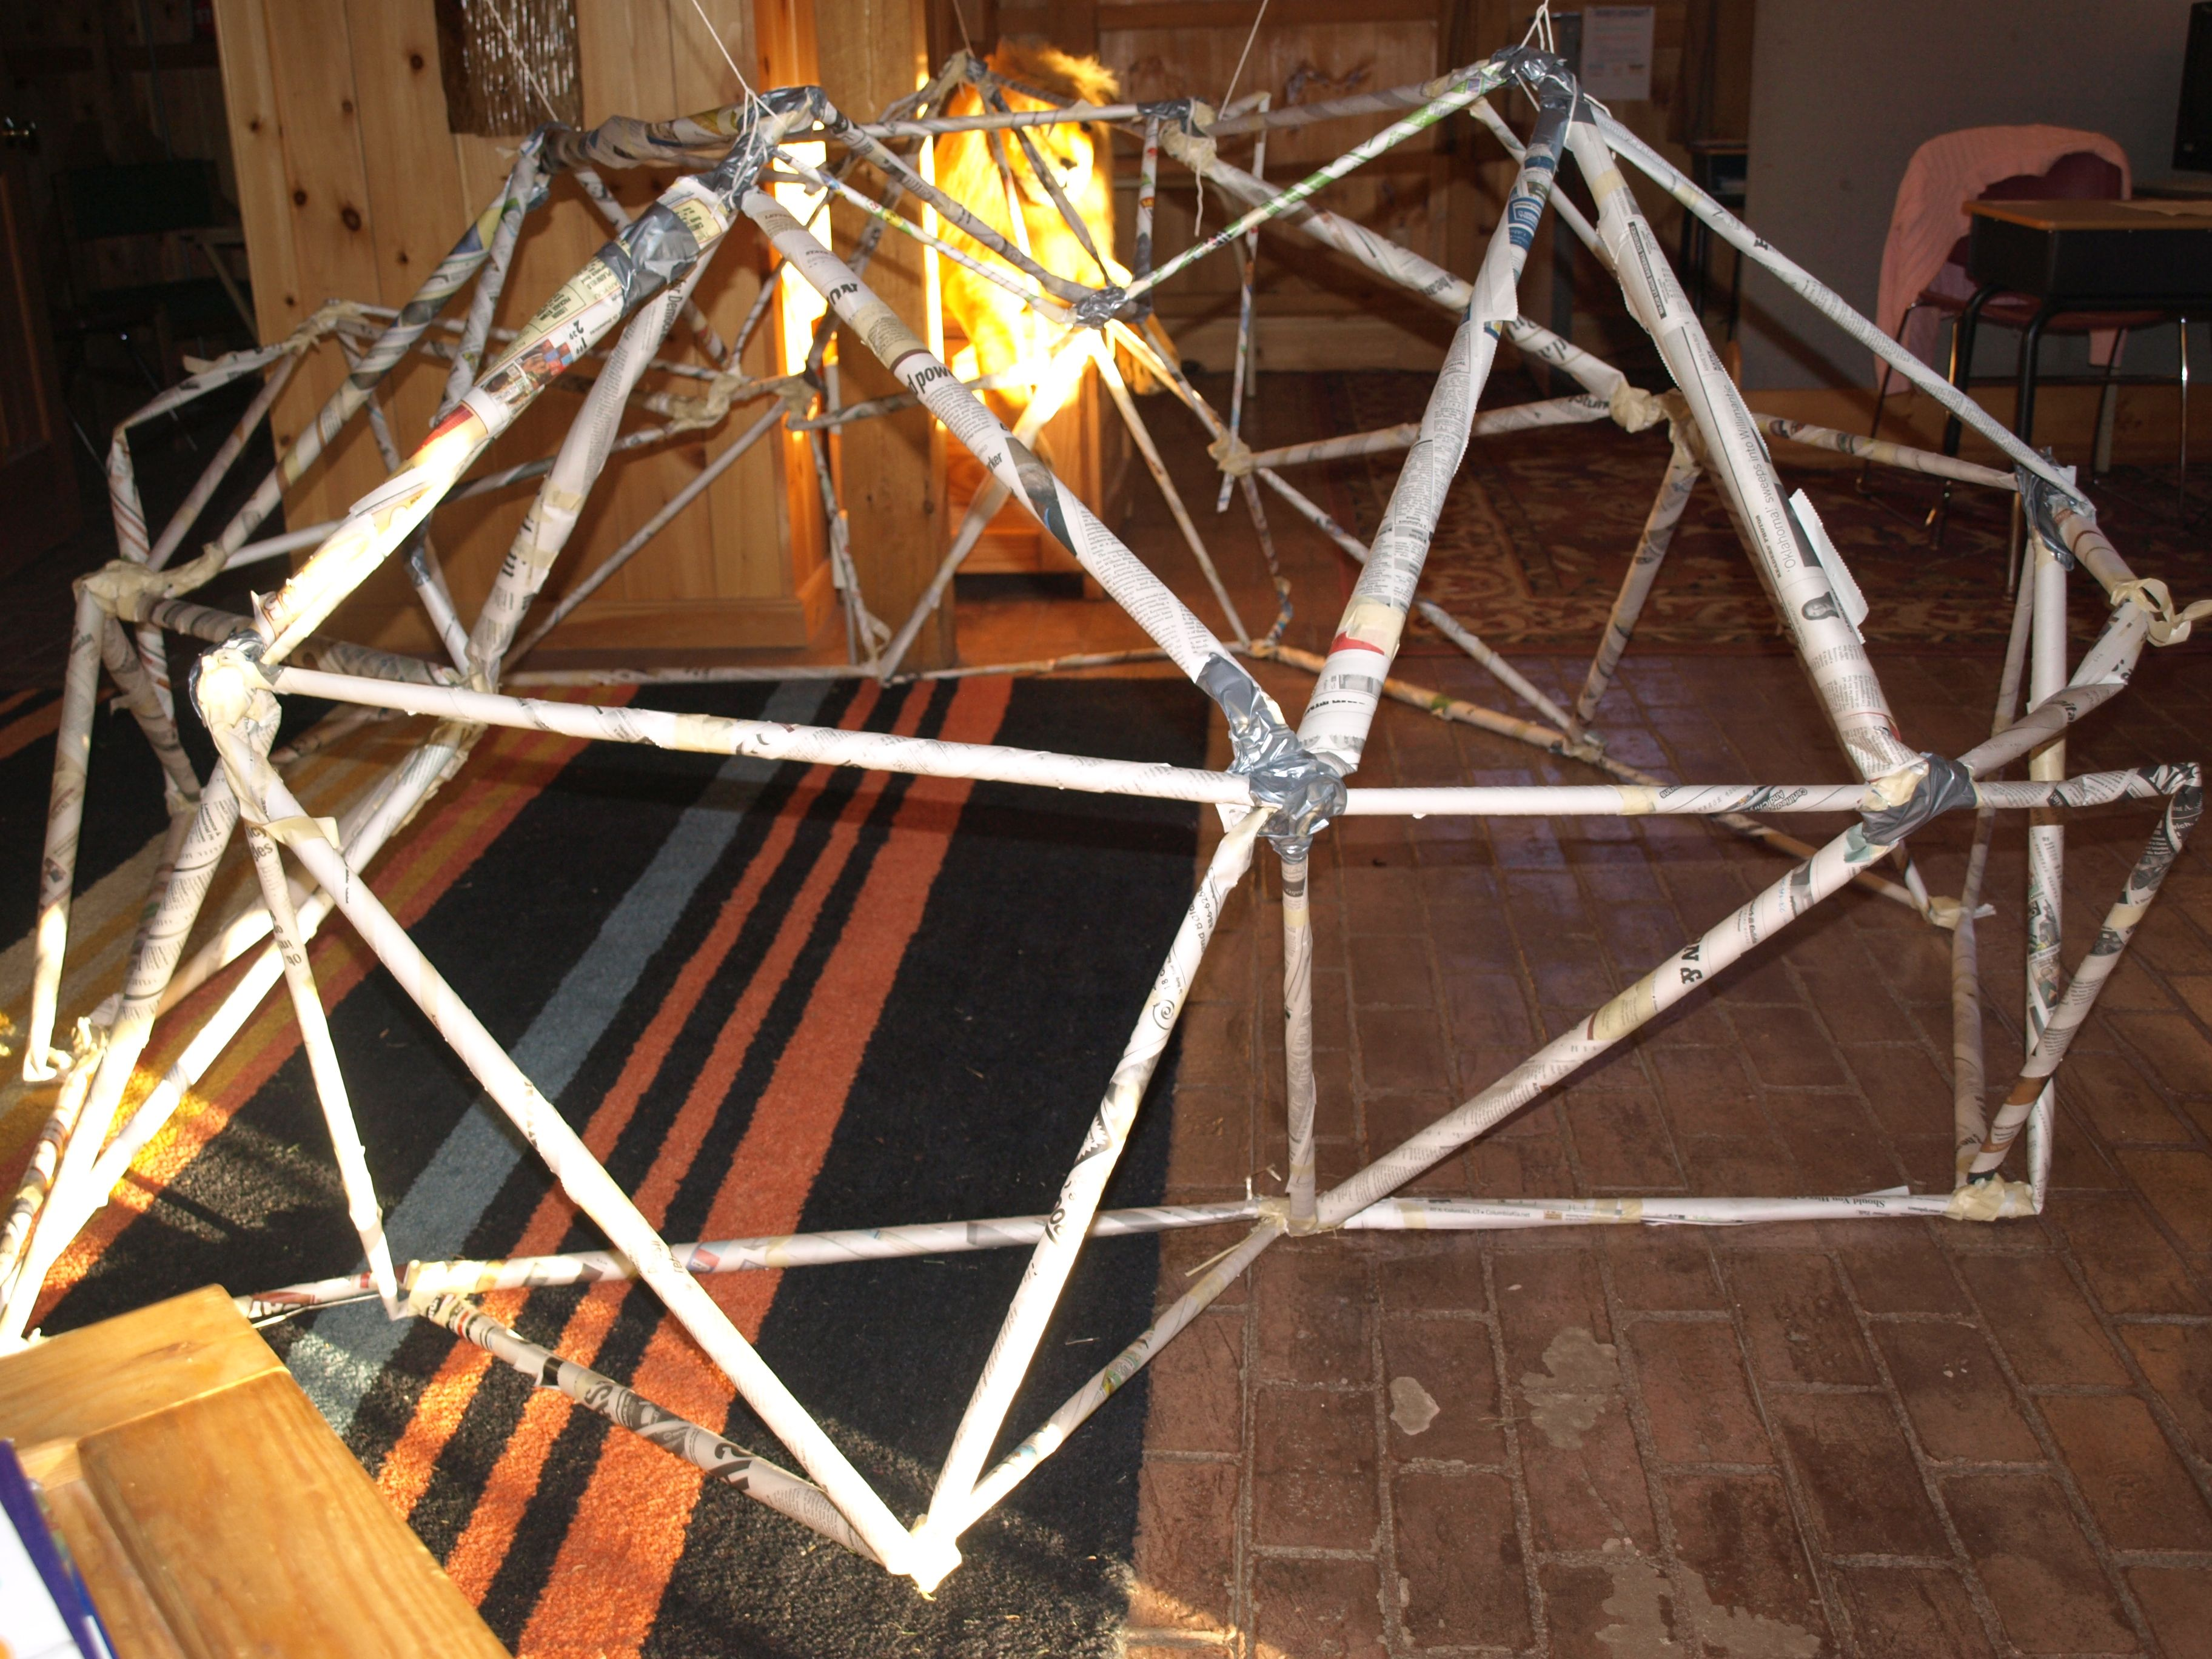 Geodesic Dome Made Of Rolled Newspapers And Tape With